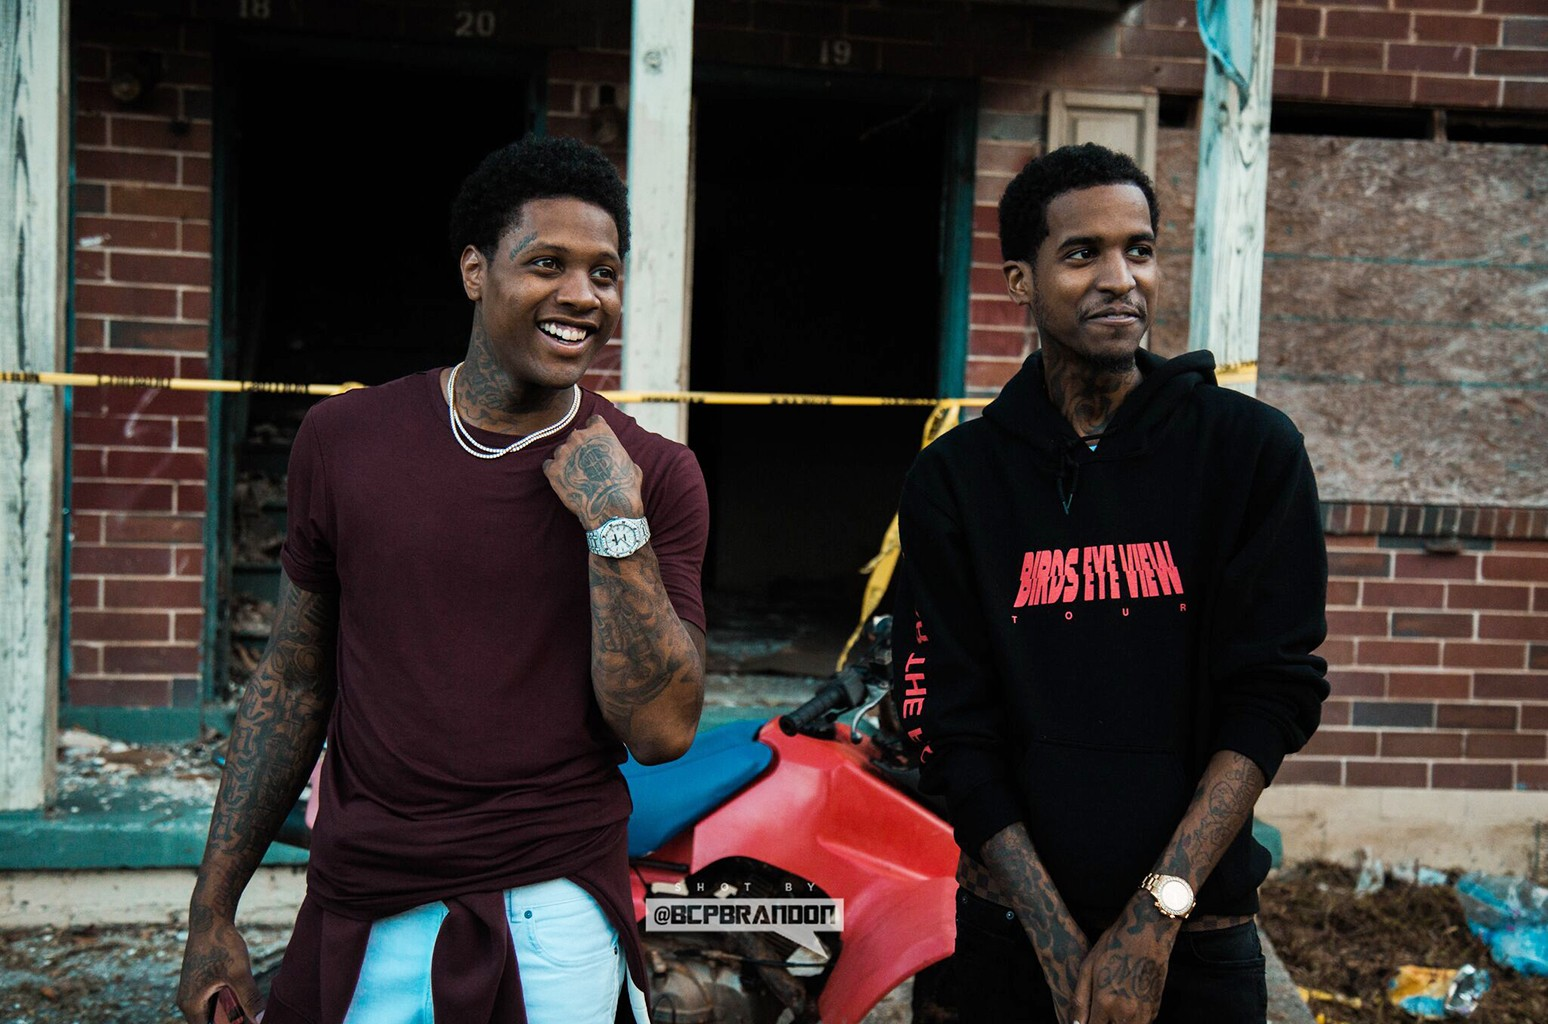 Lil Durk and Lil Reese